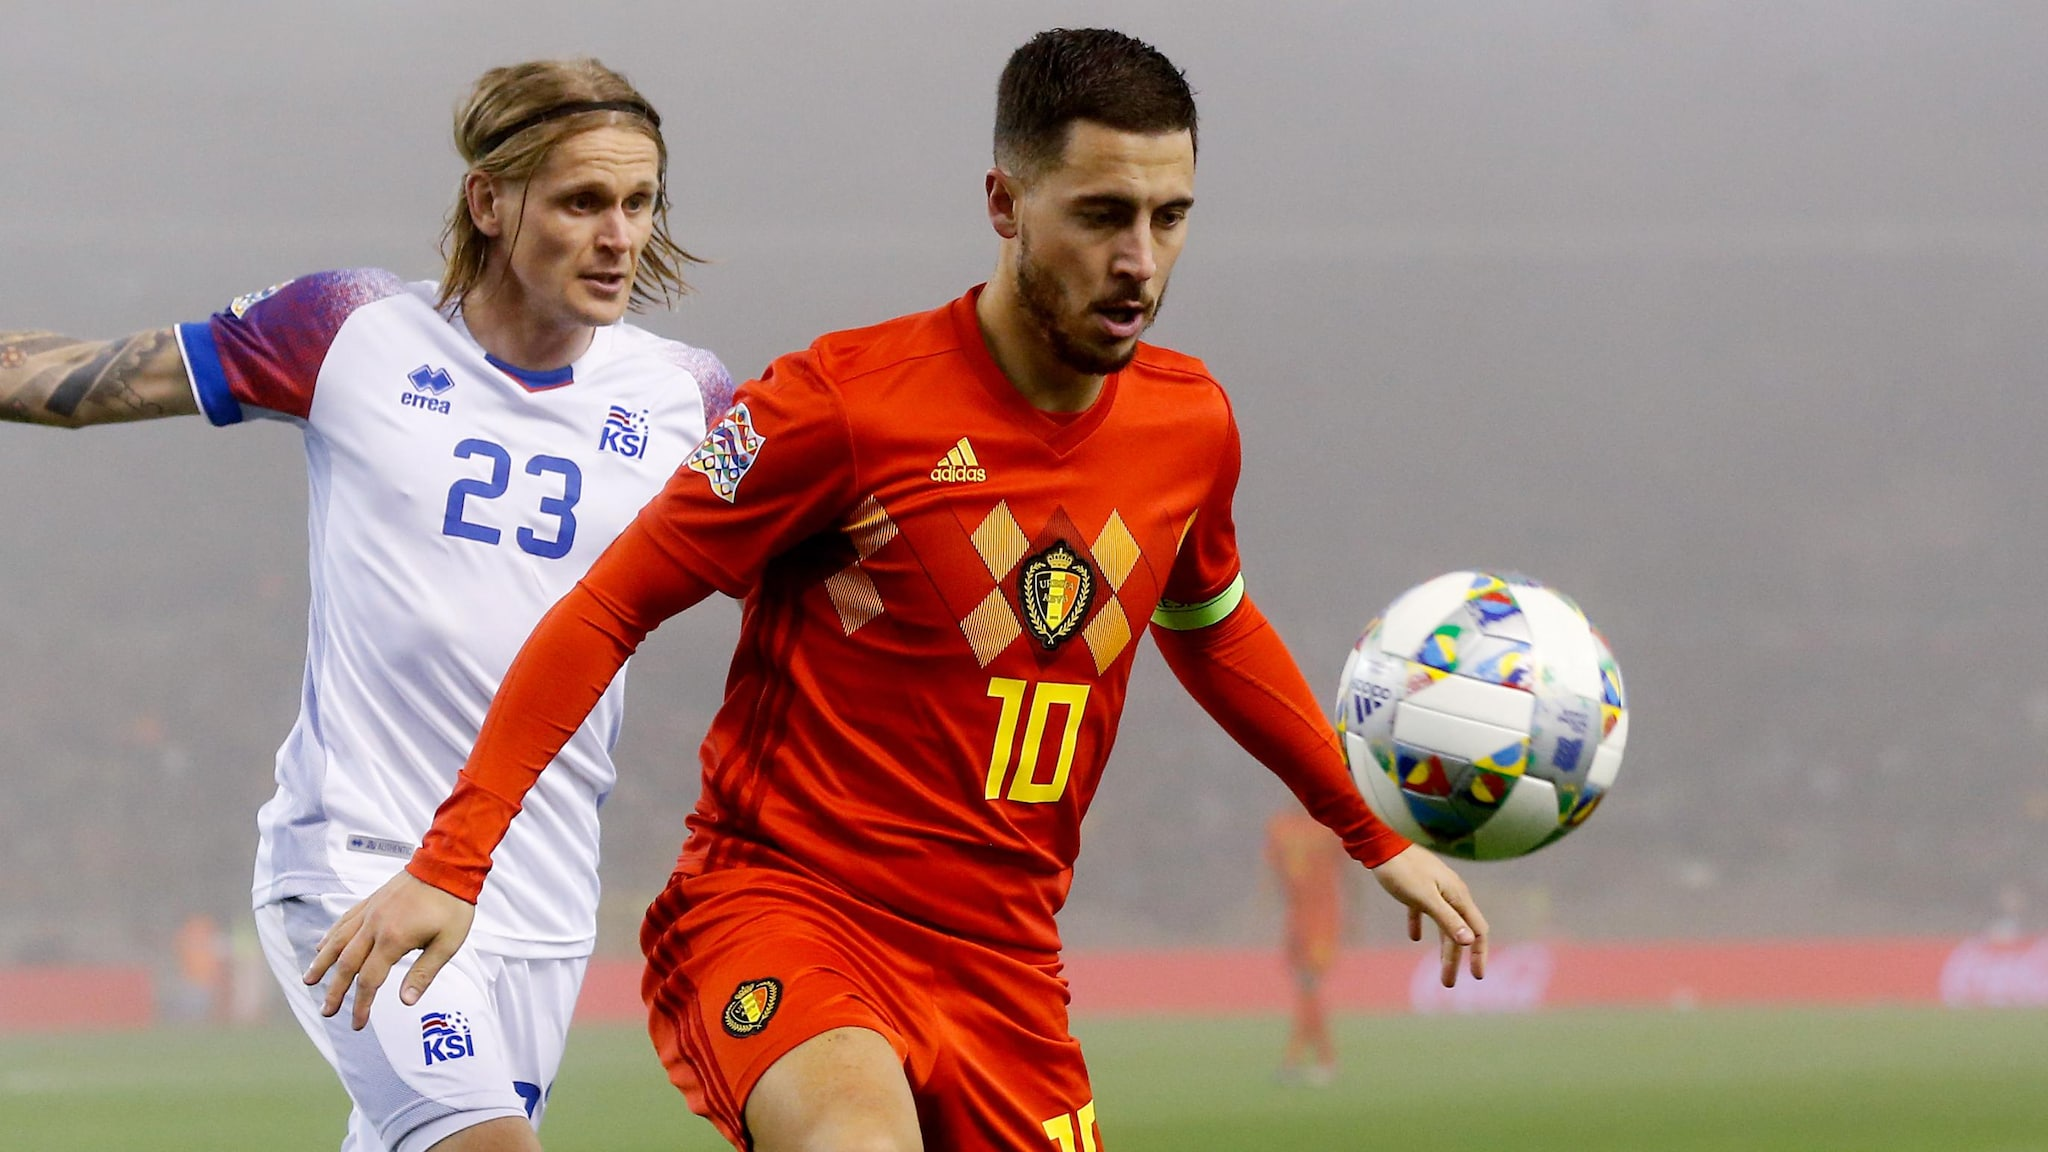 Belgium vs Iceland Nations League preview: where to watch, team news